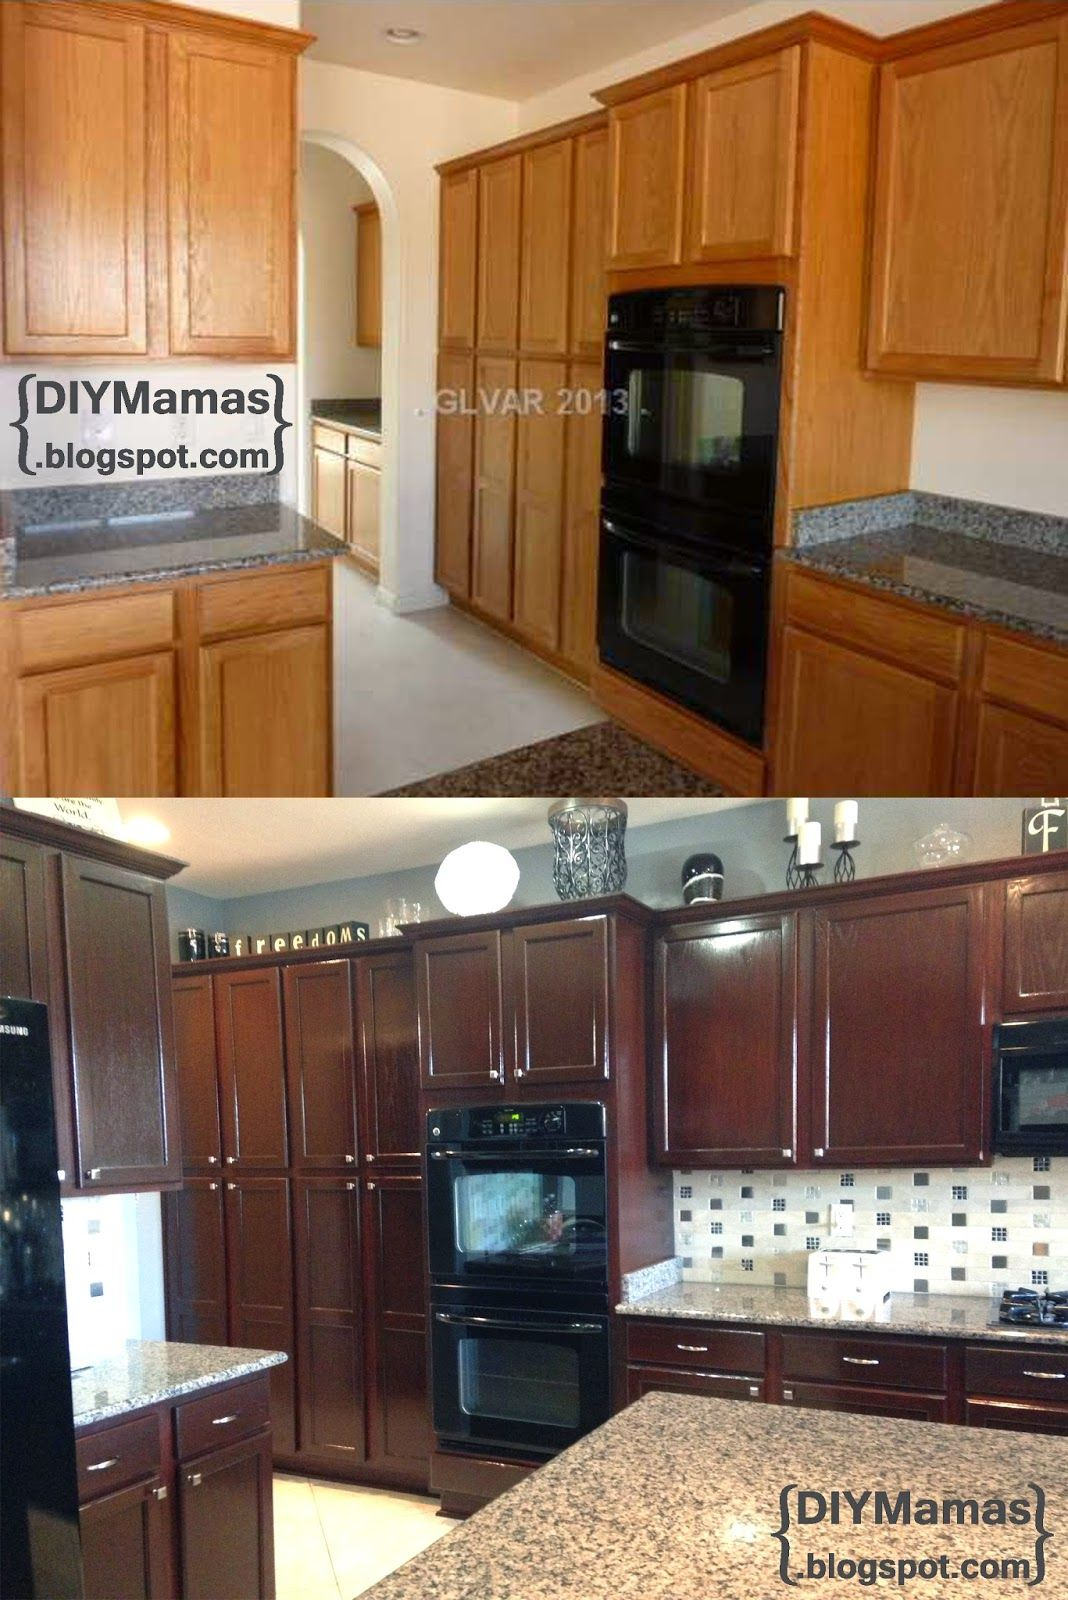 Best Places To Buy Kitchen Cabinets Diy Mamas Kitchen Makeover Gel Stain Backsplash